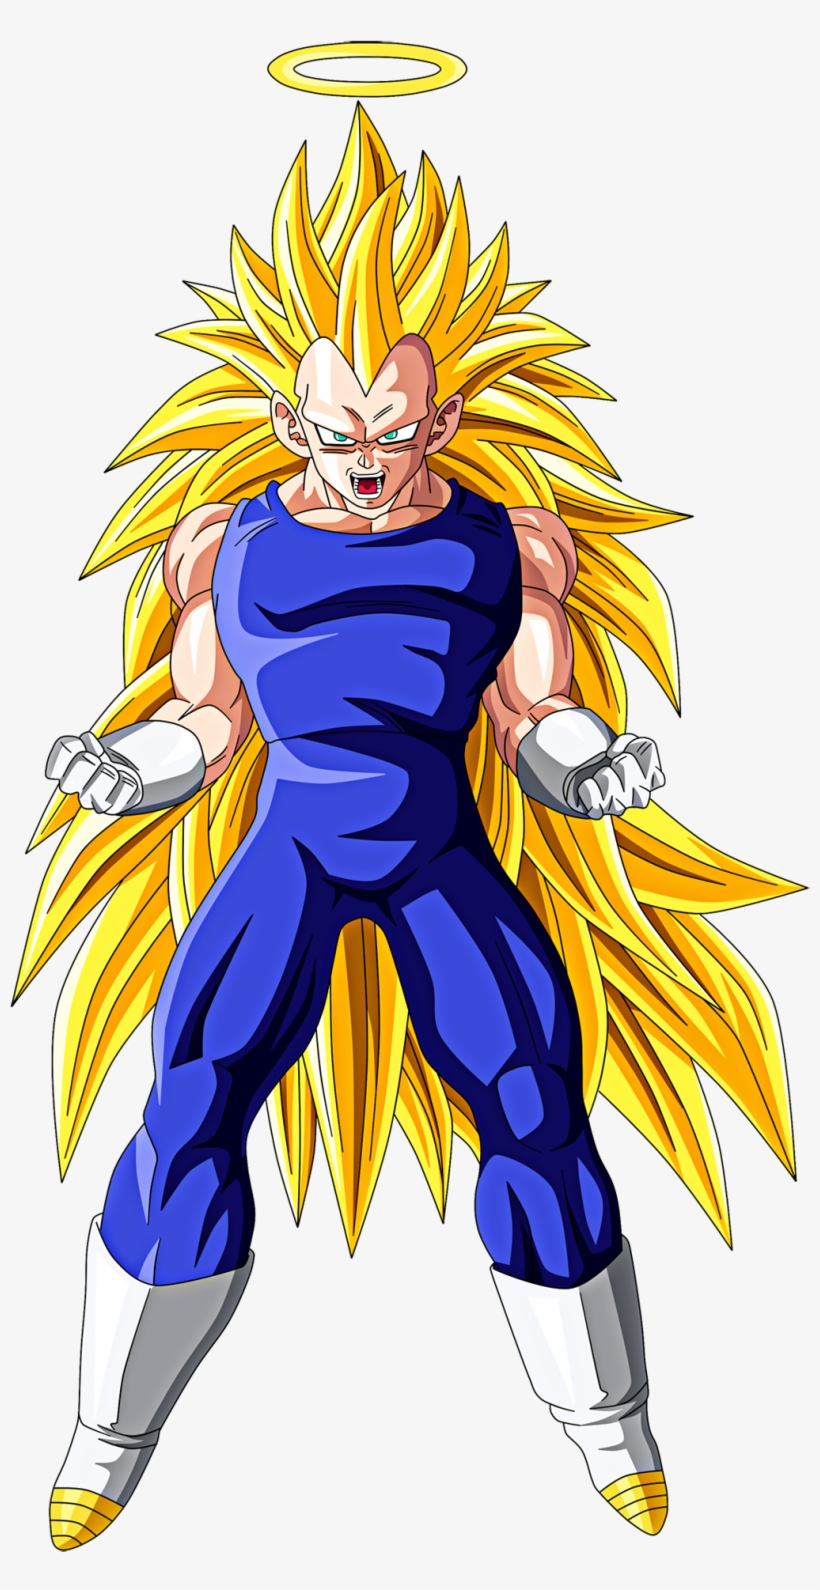 Dragon Ball Z Characters Vegeta - Dragon Ball Z Vegeta Super Sayen, transparent png #3202650